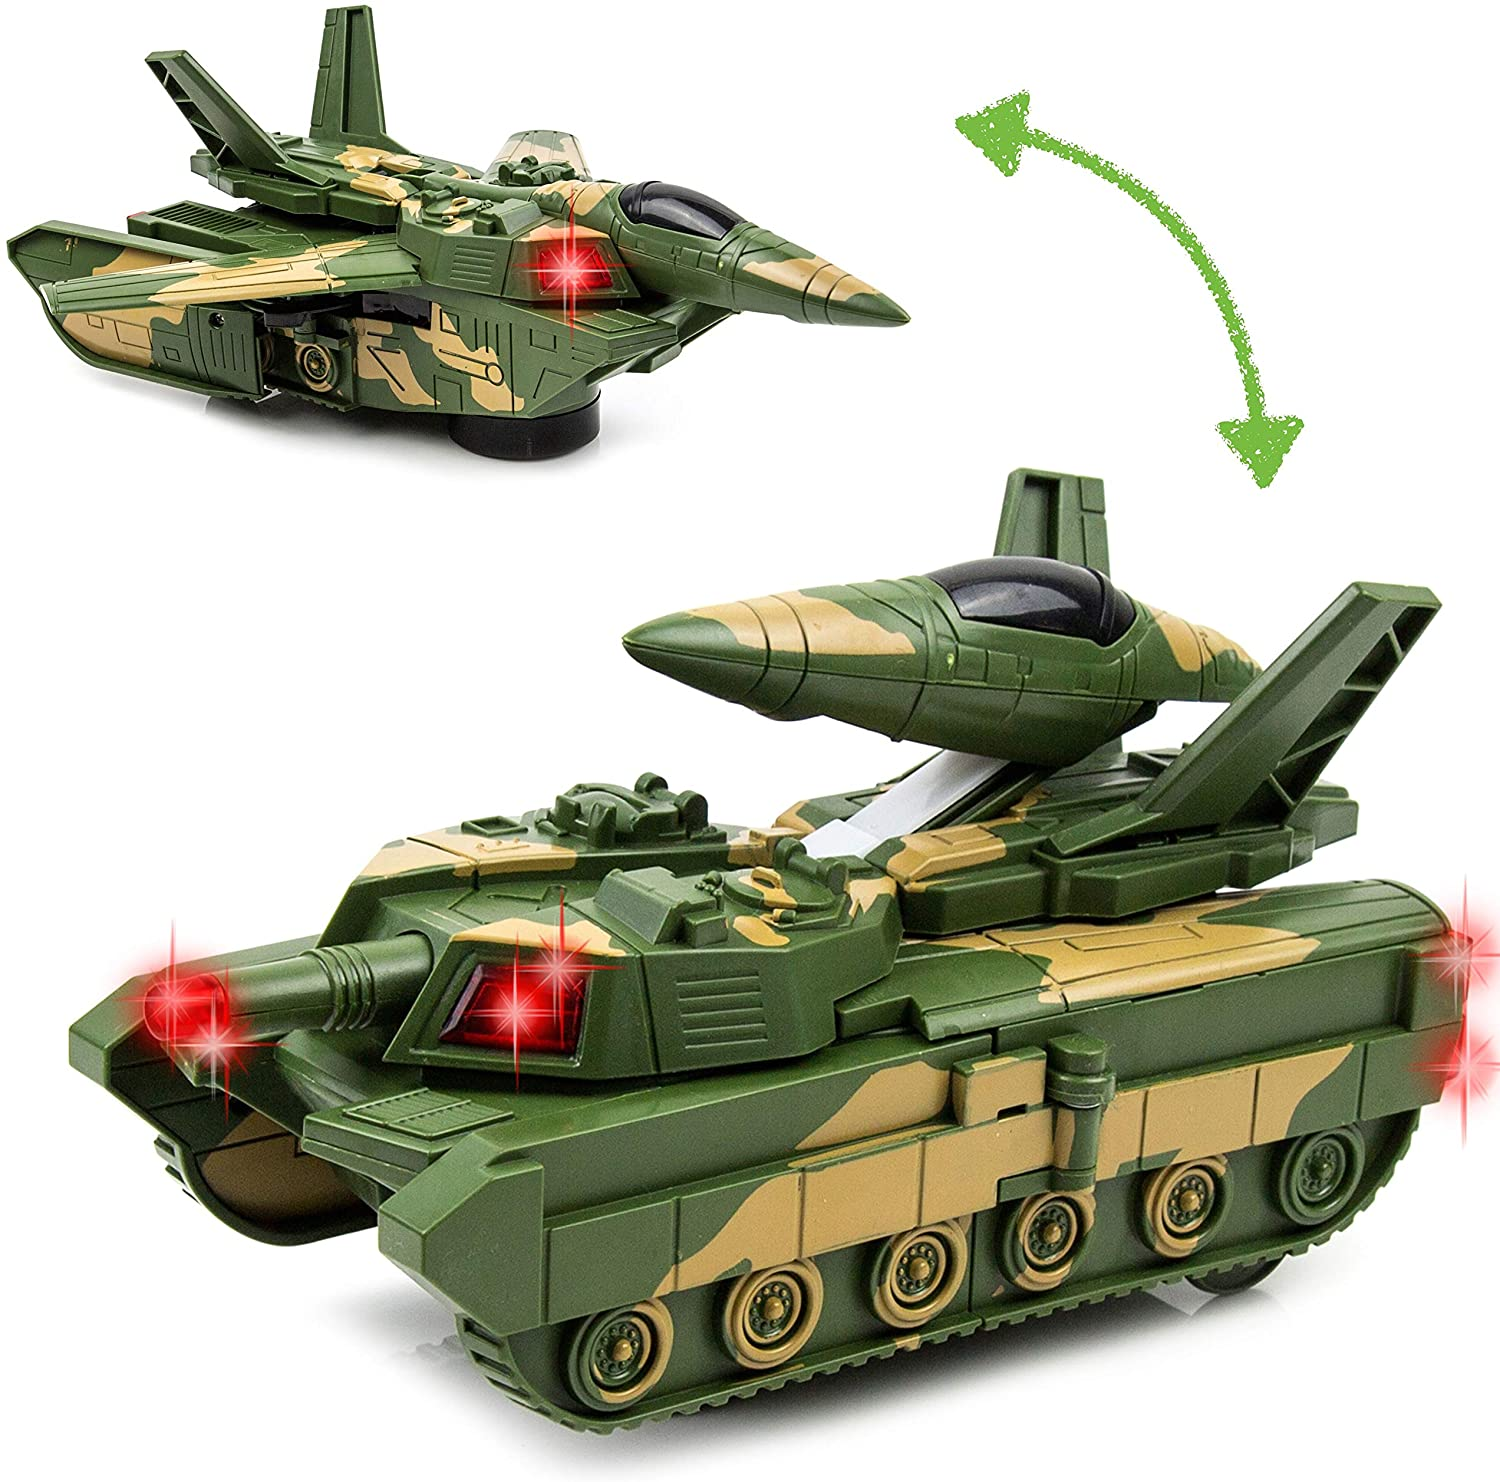 Toytykes Electric Deformation Combat Tank Material Comes with Lights and Music Automatically Transforms from The Tank to Robot Brain Development Ultimate Fun for Kids